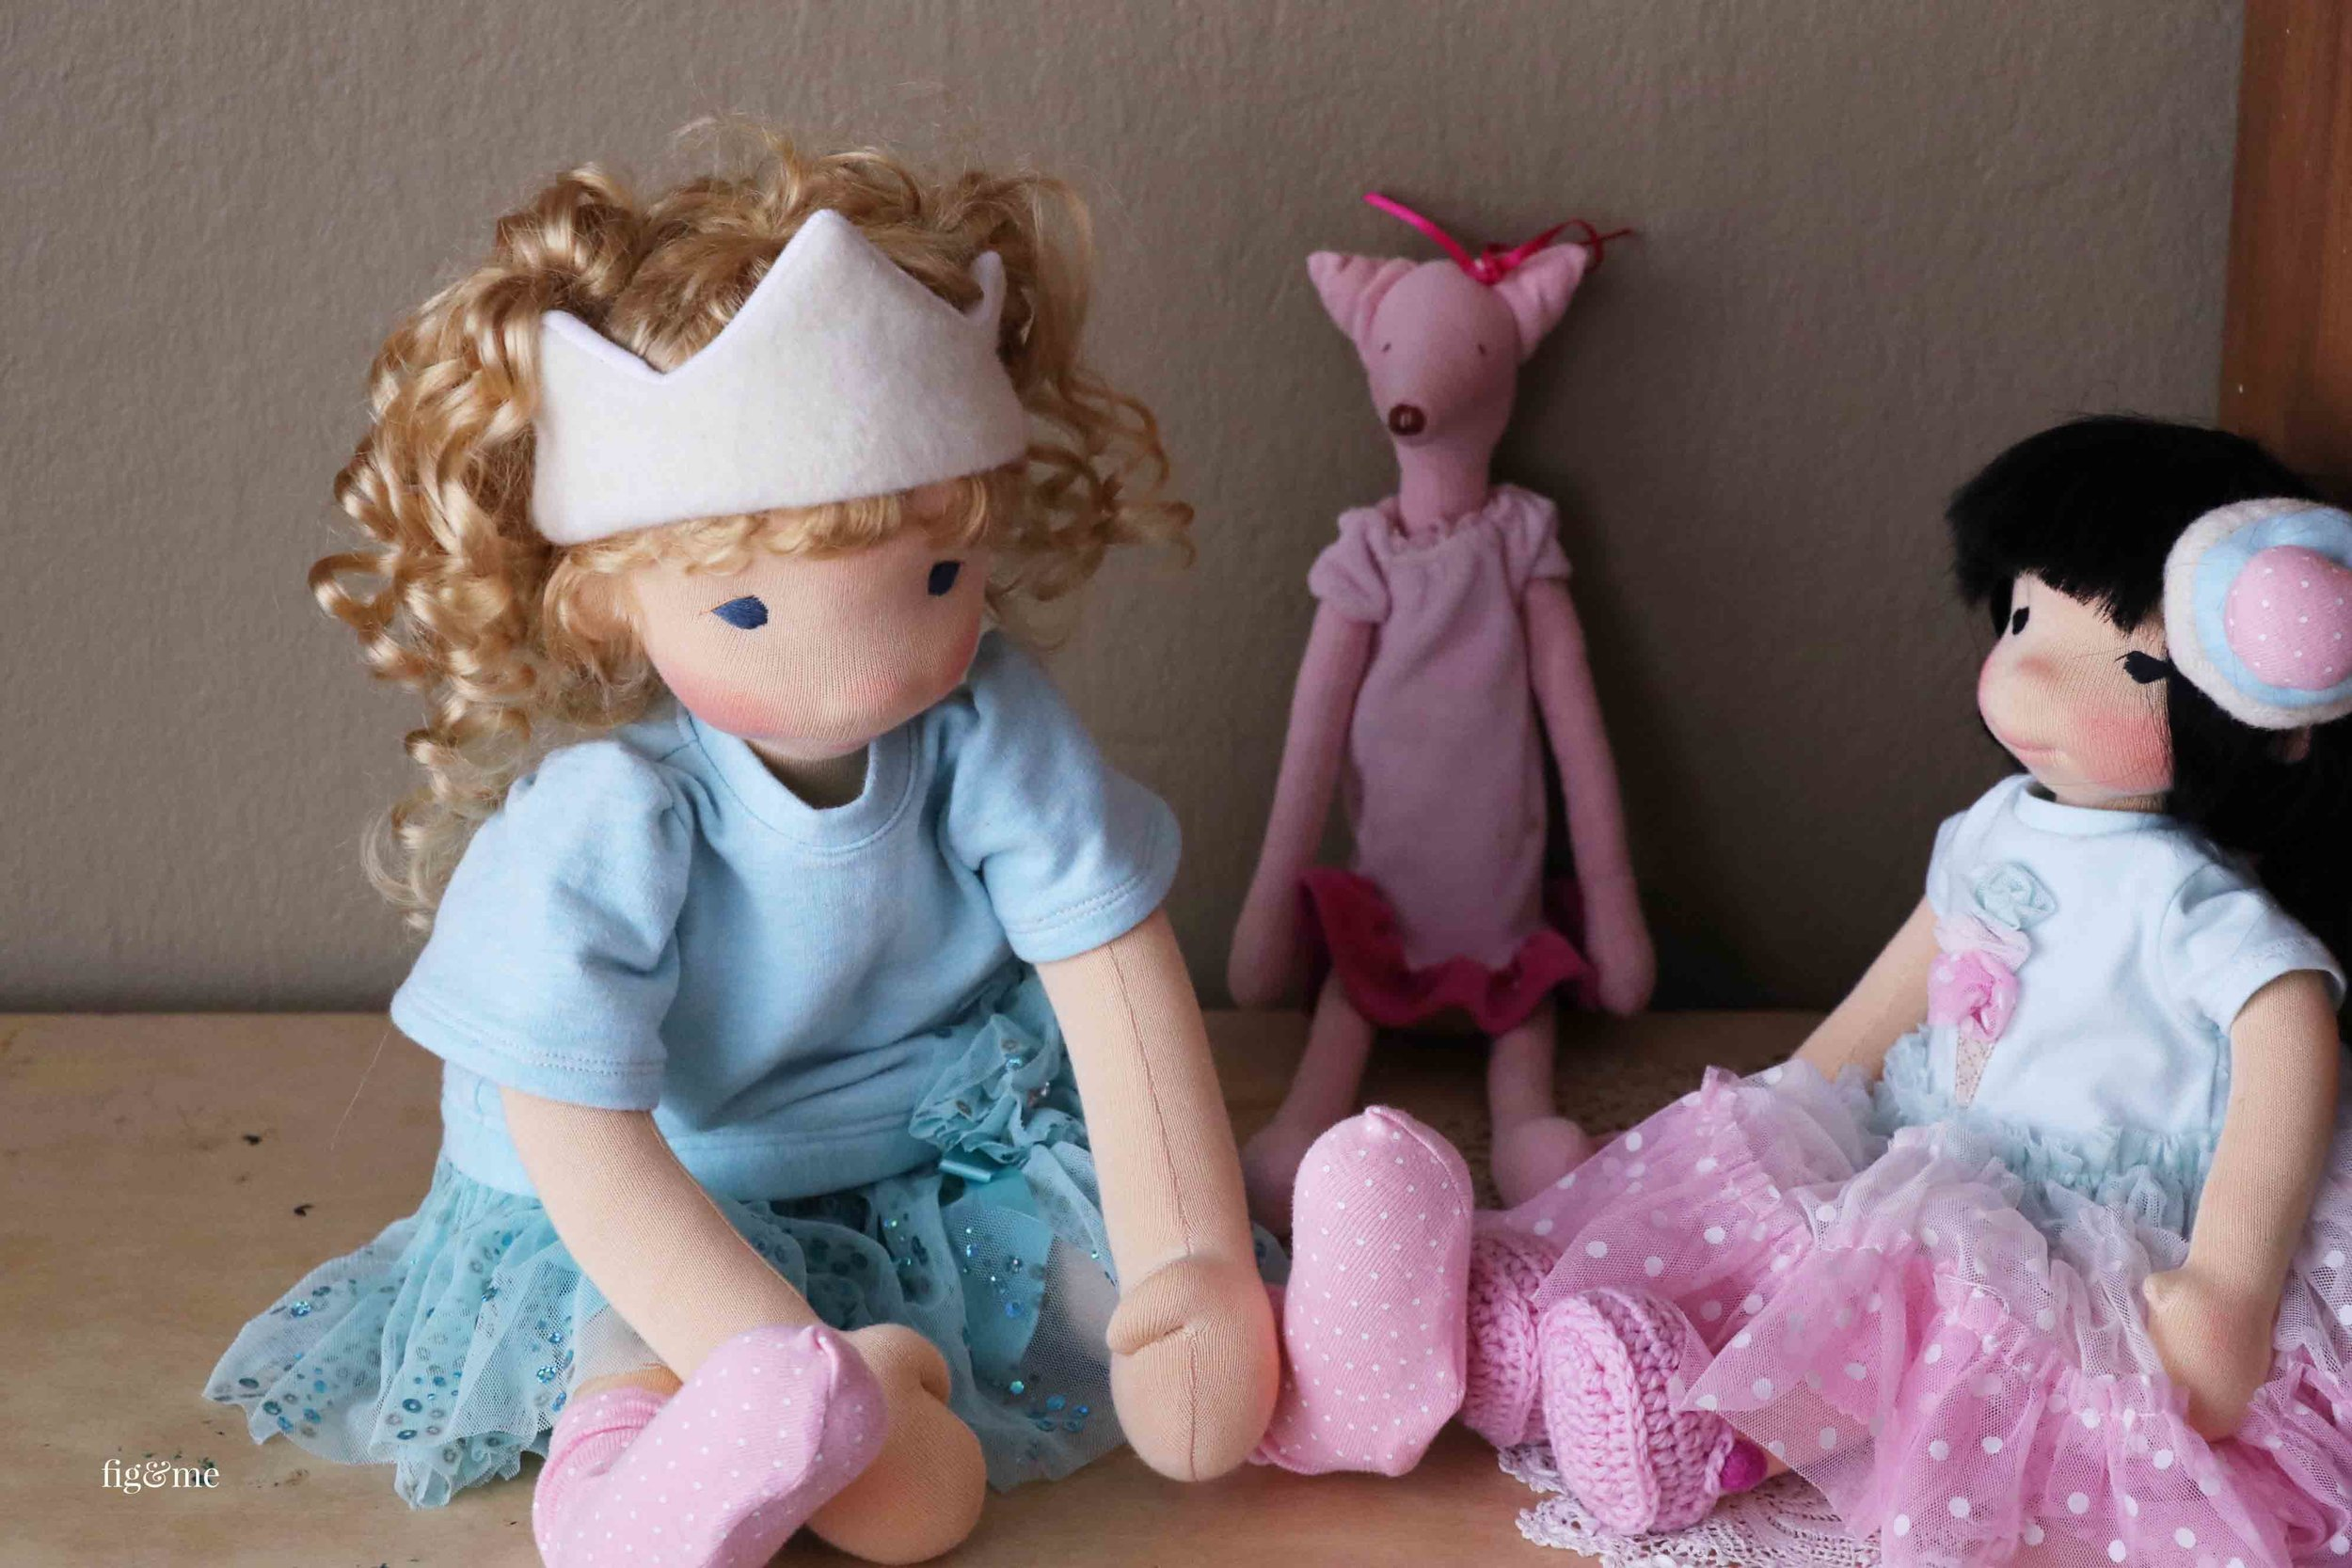 Dolls at play, by Fig and Me.